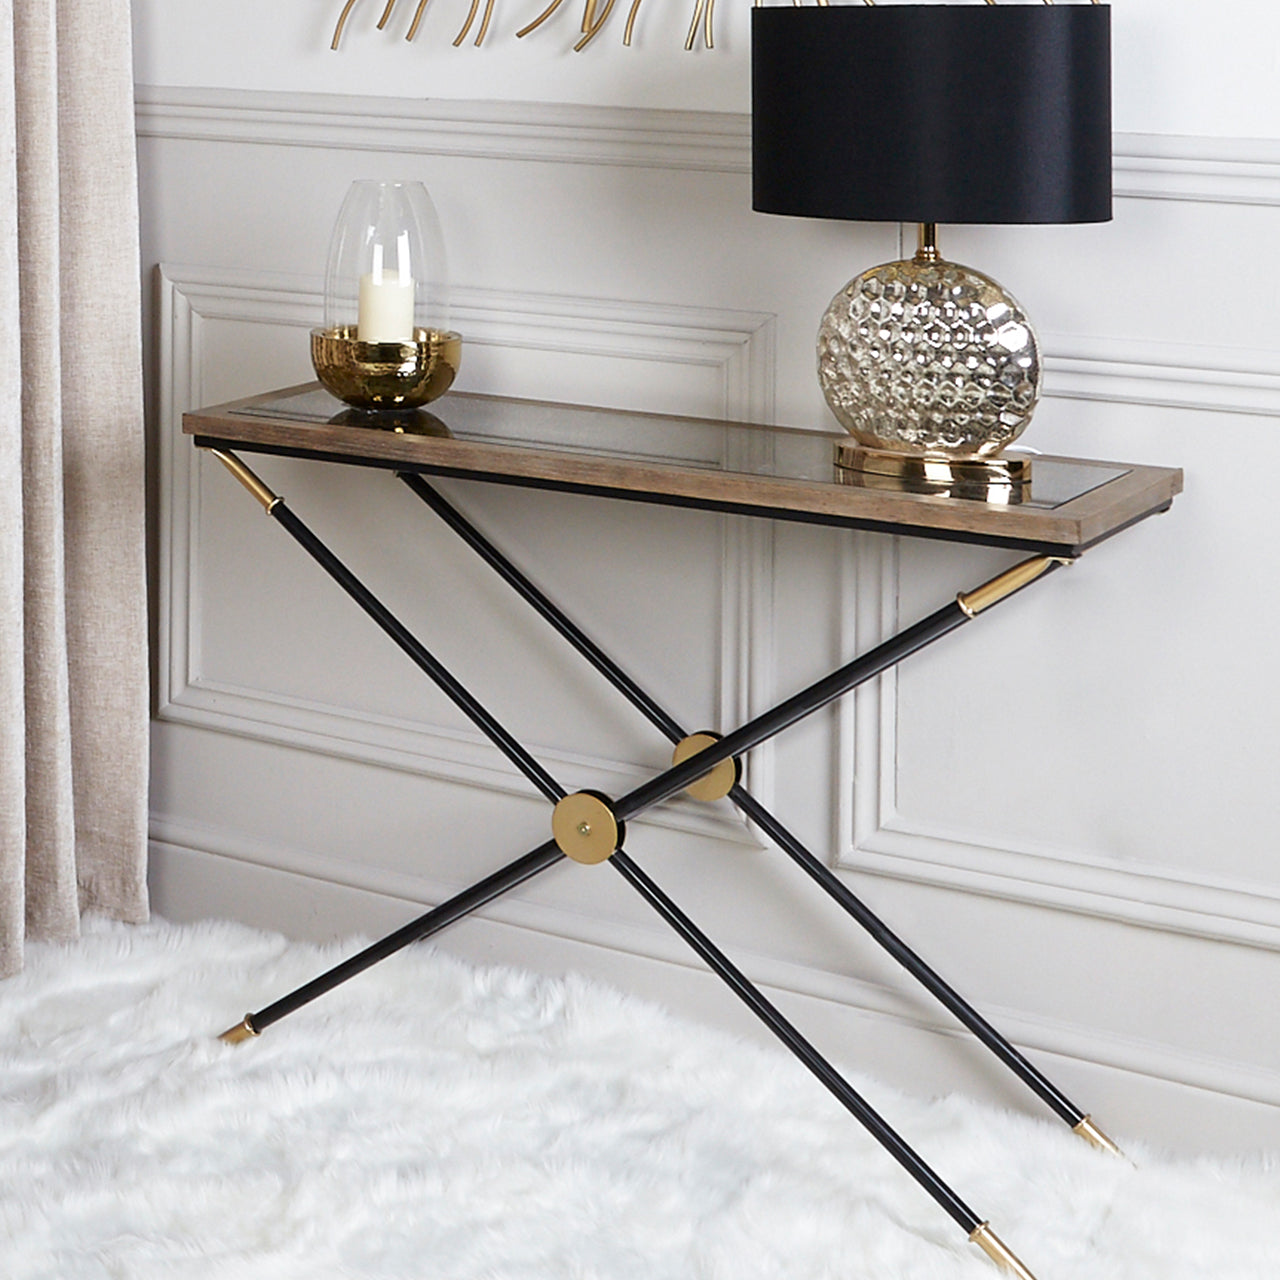 Black X Shaped Table